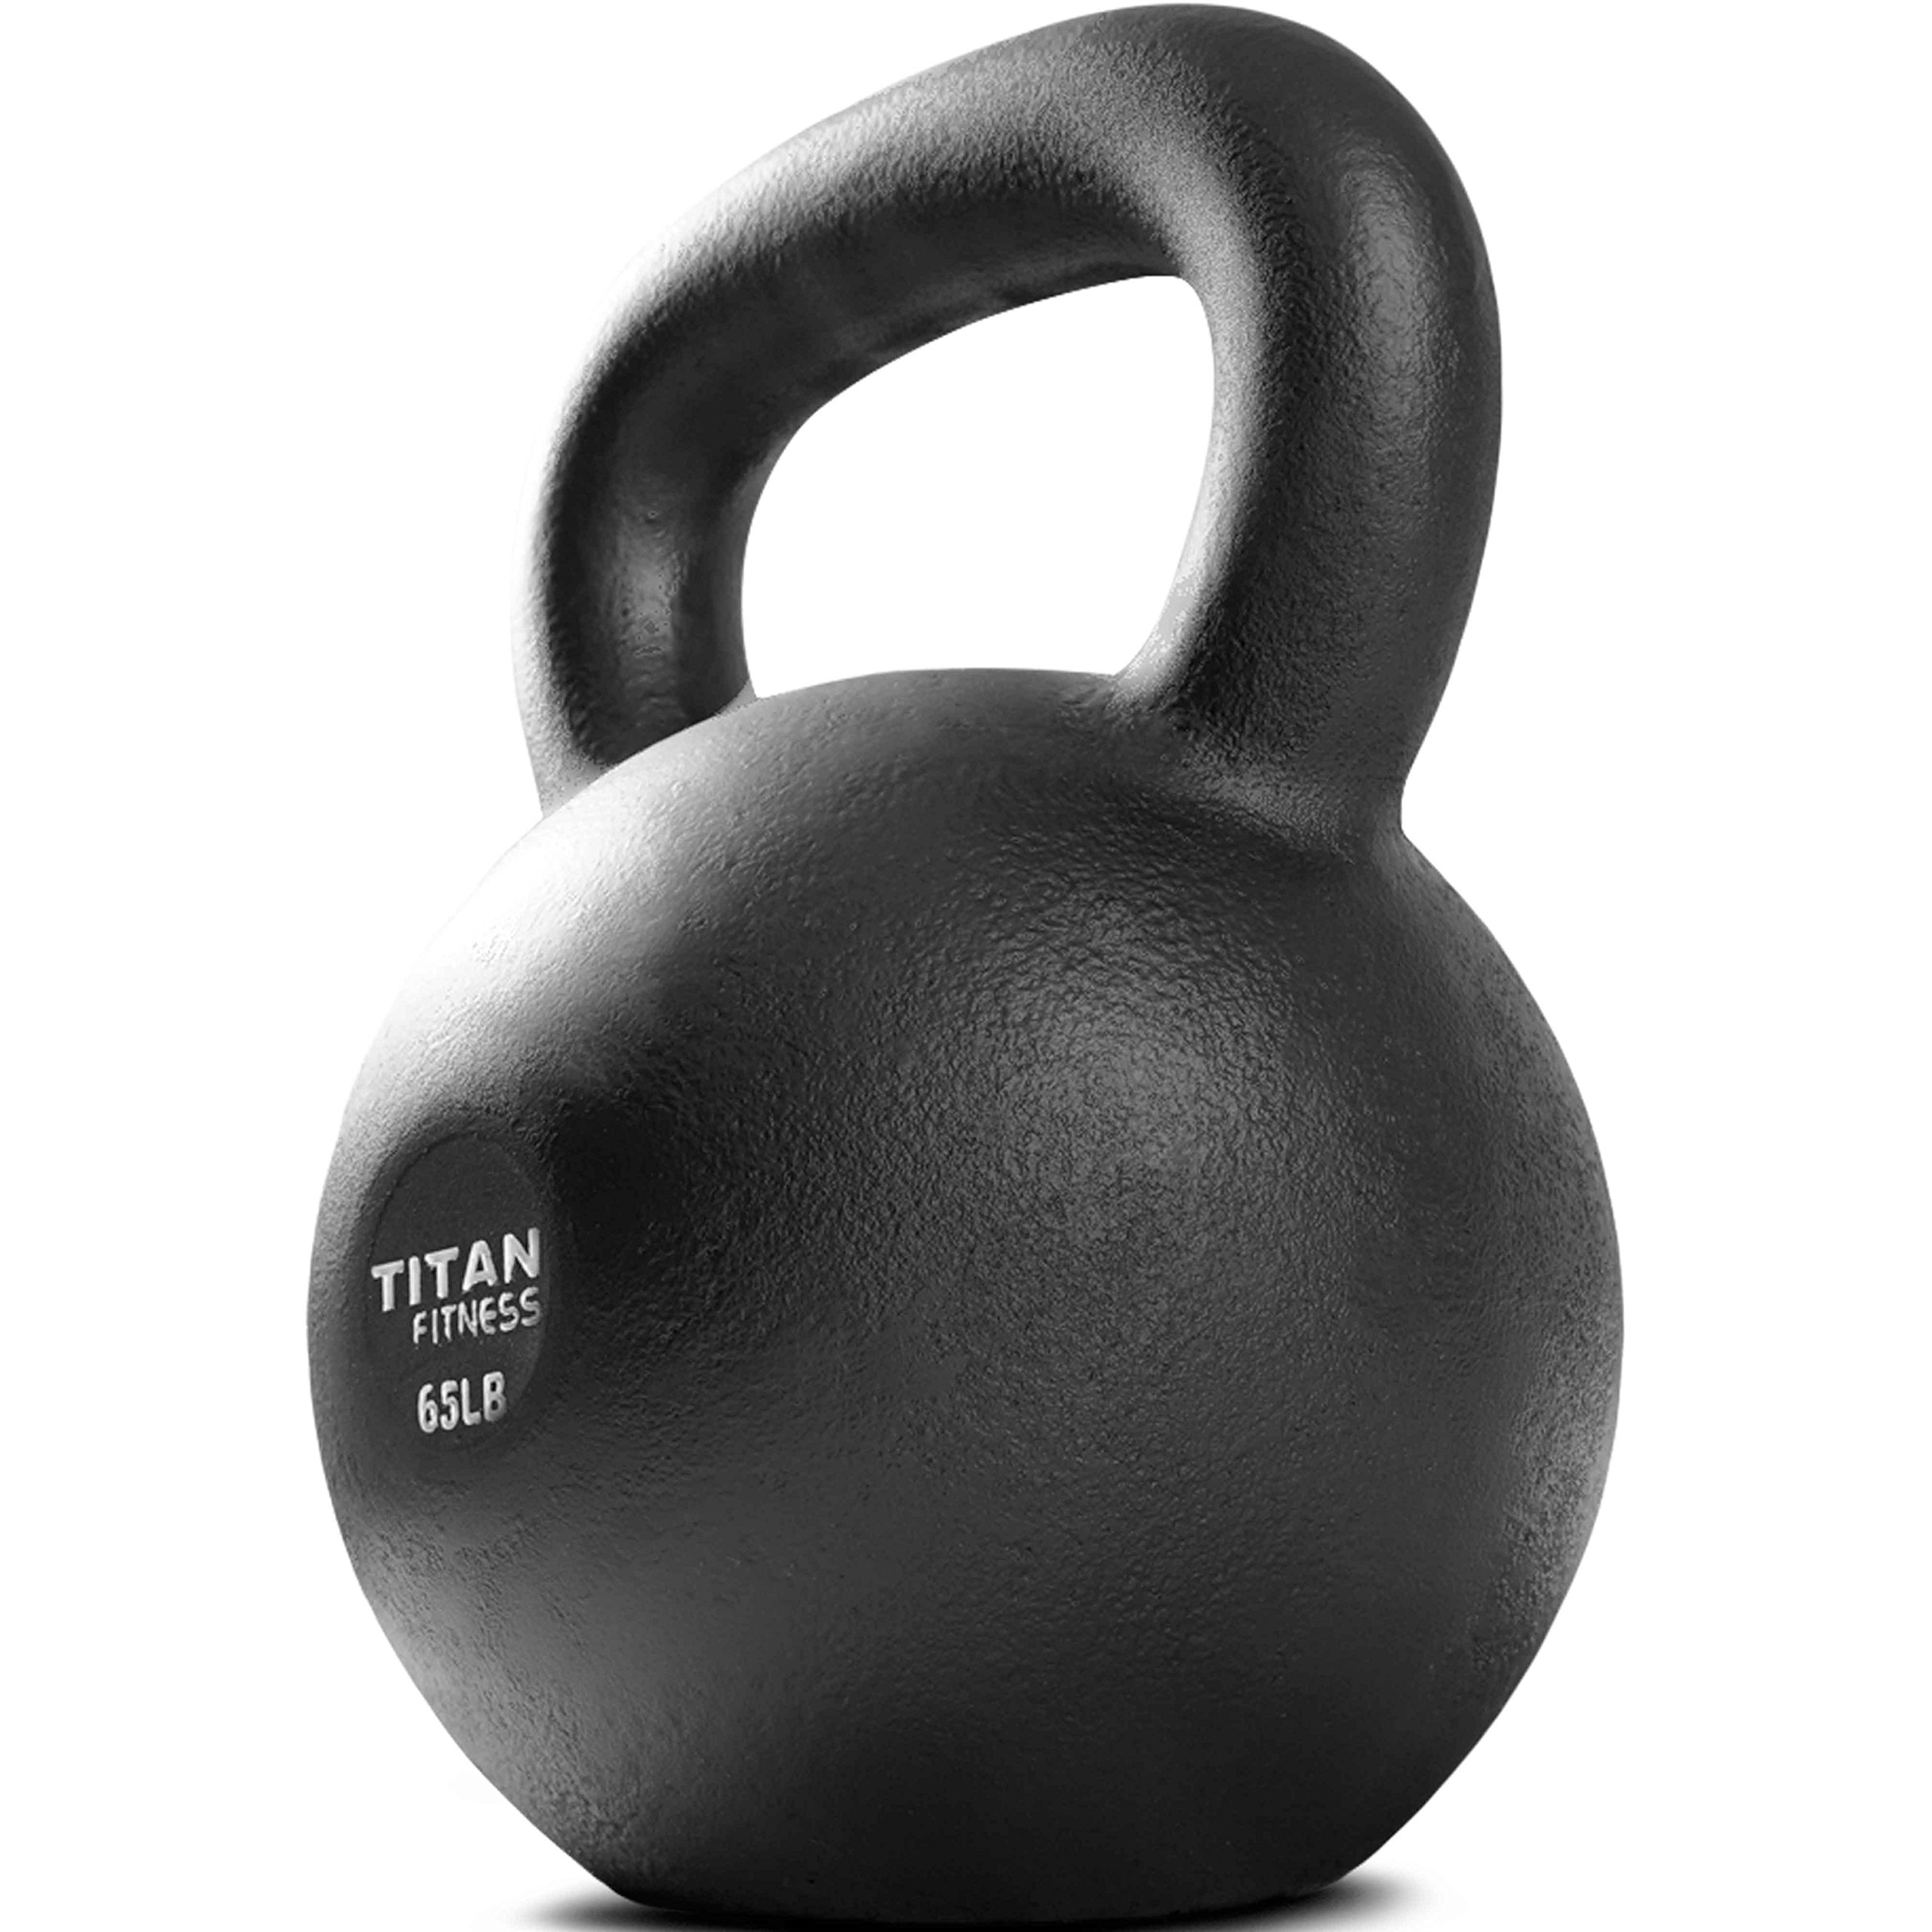 Titan Fitness Cast Iron Kettlebell Weight 65 lb Natural Solid Workout Swing by Titan Fitness